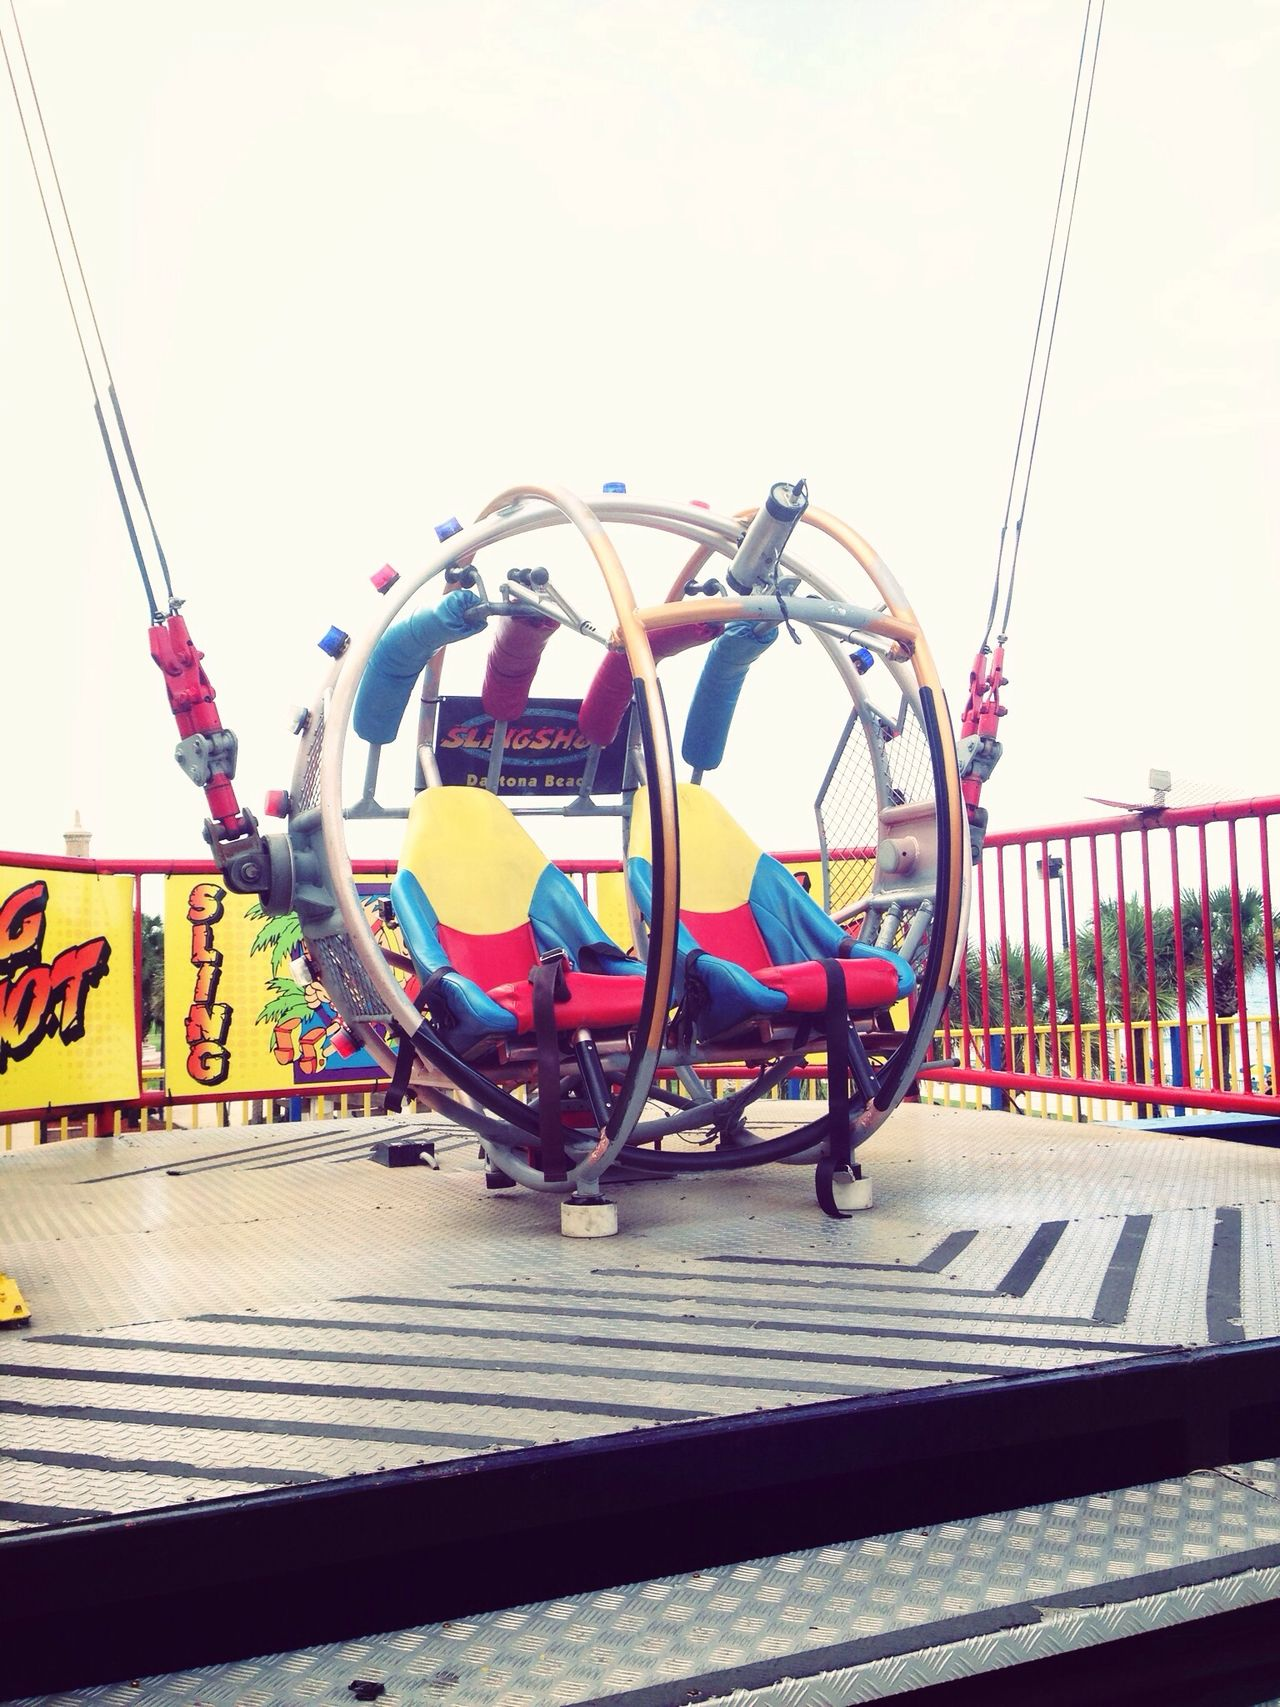 …we were catapulted up to 300 feet in the air at 100 mph! #adrenaline #SlingShot